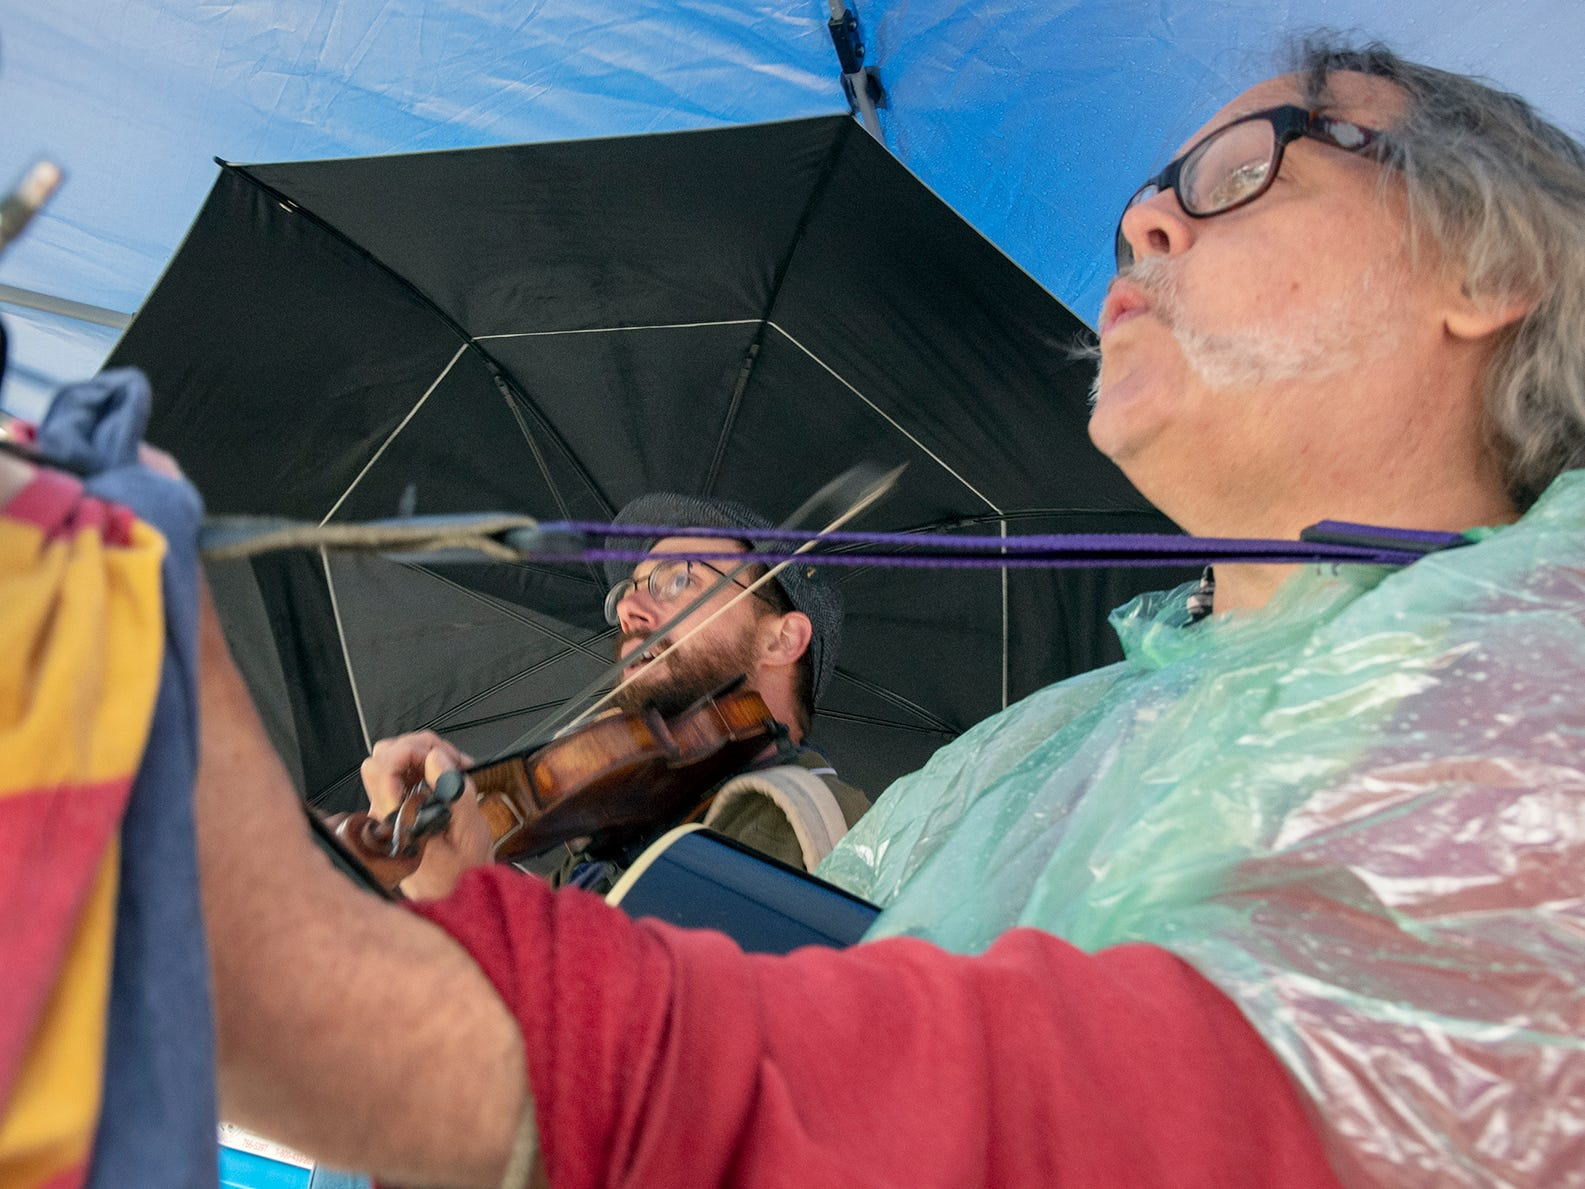 Musicians Ian Carroll and Ronn Benway perform on Continental Square during the 44th Annual Olde York Street Fair.